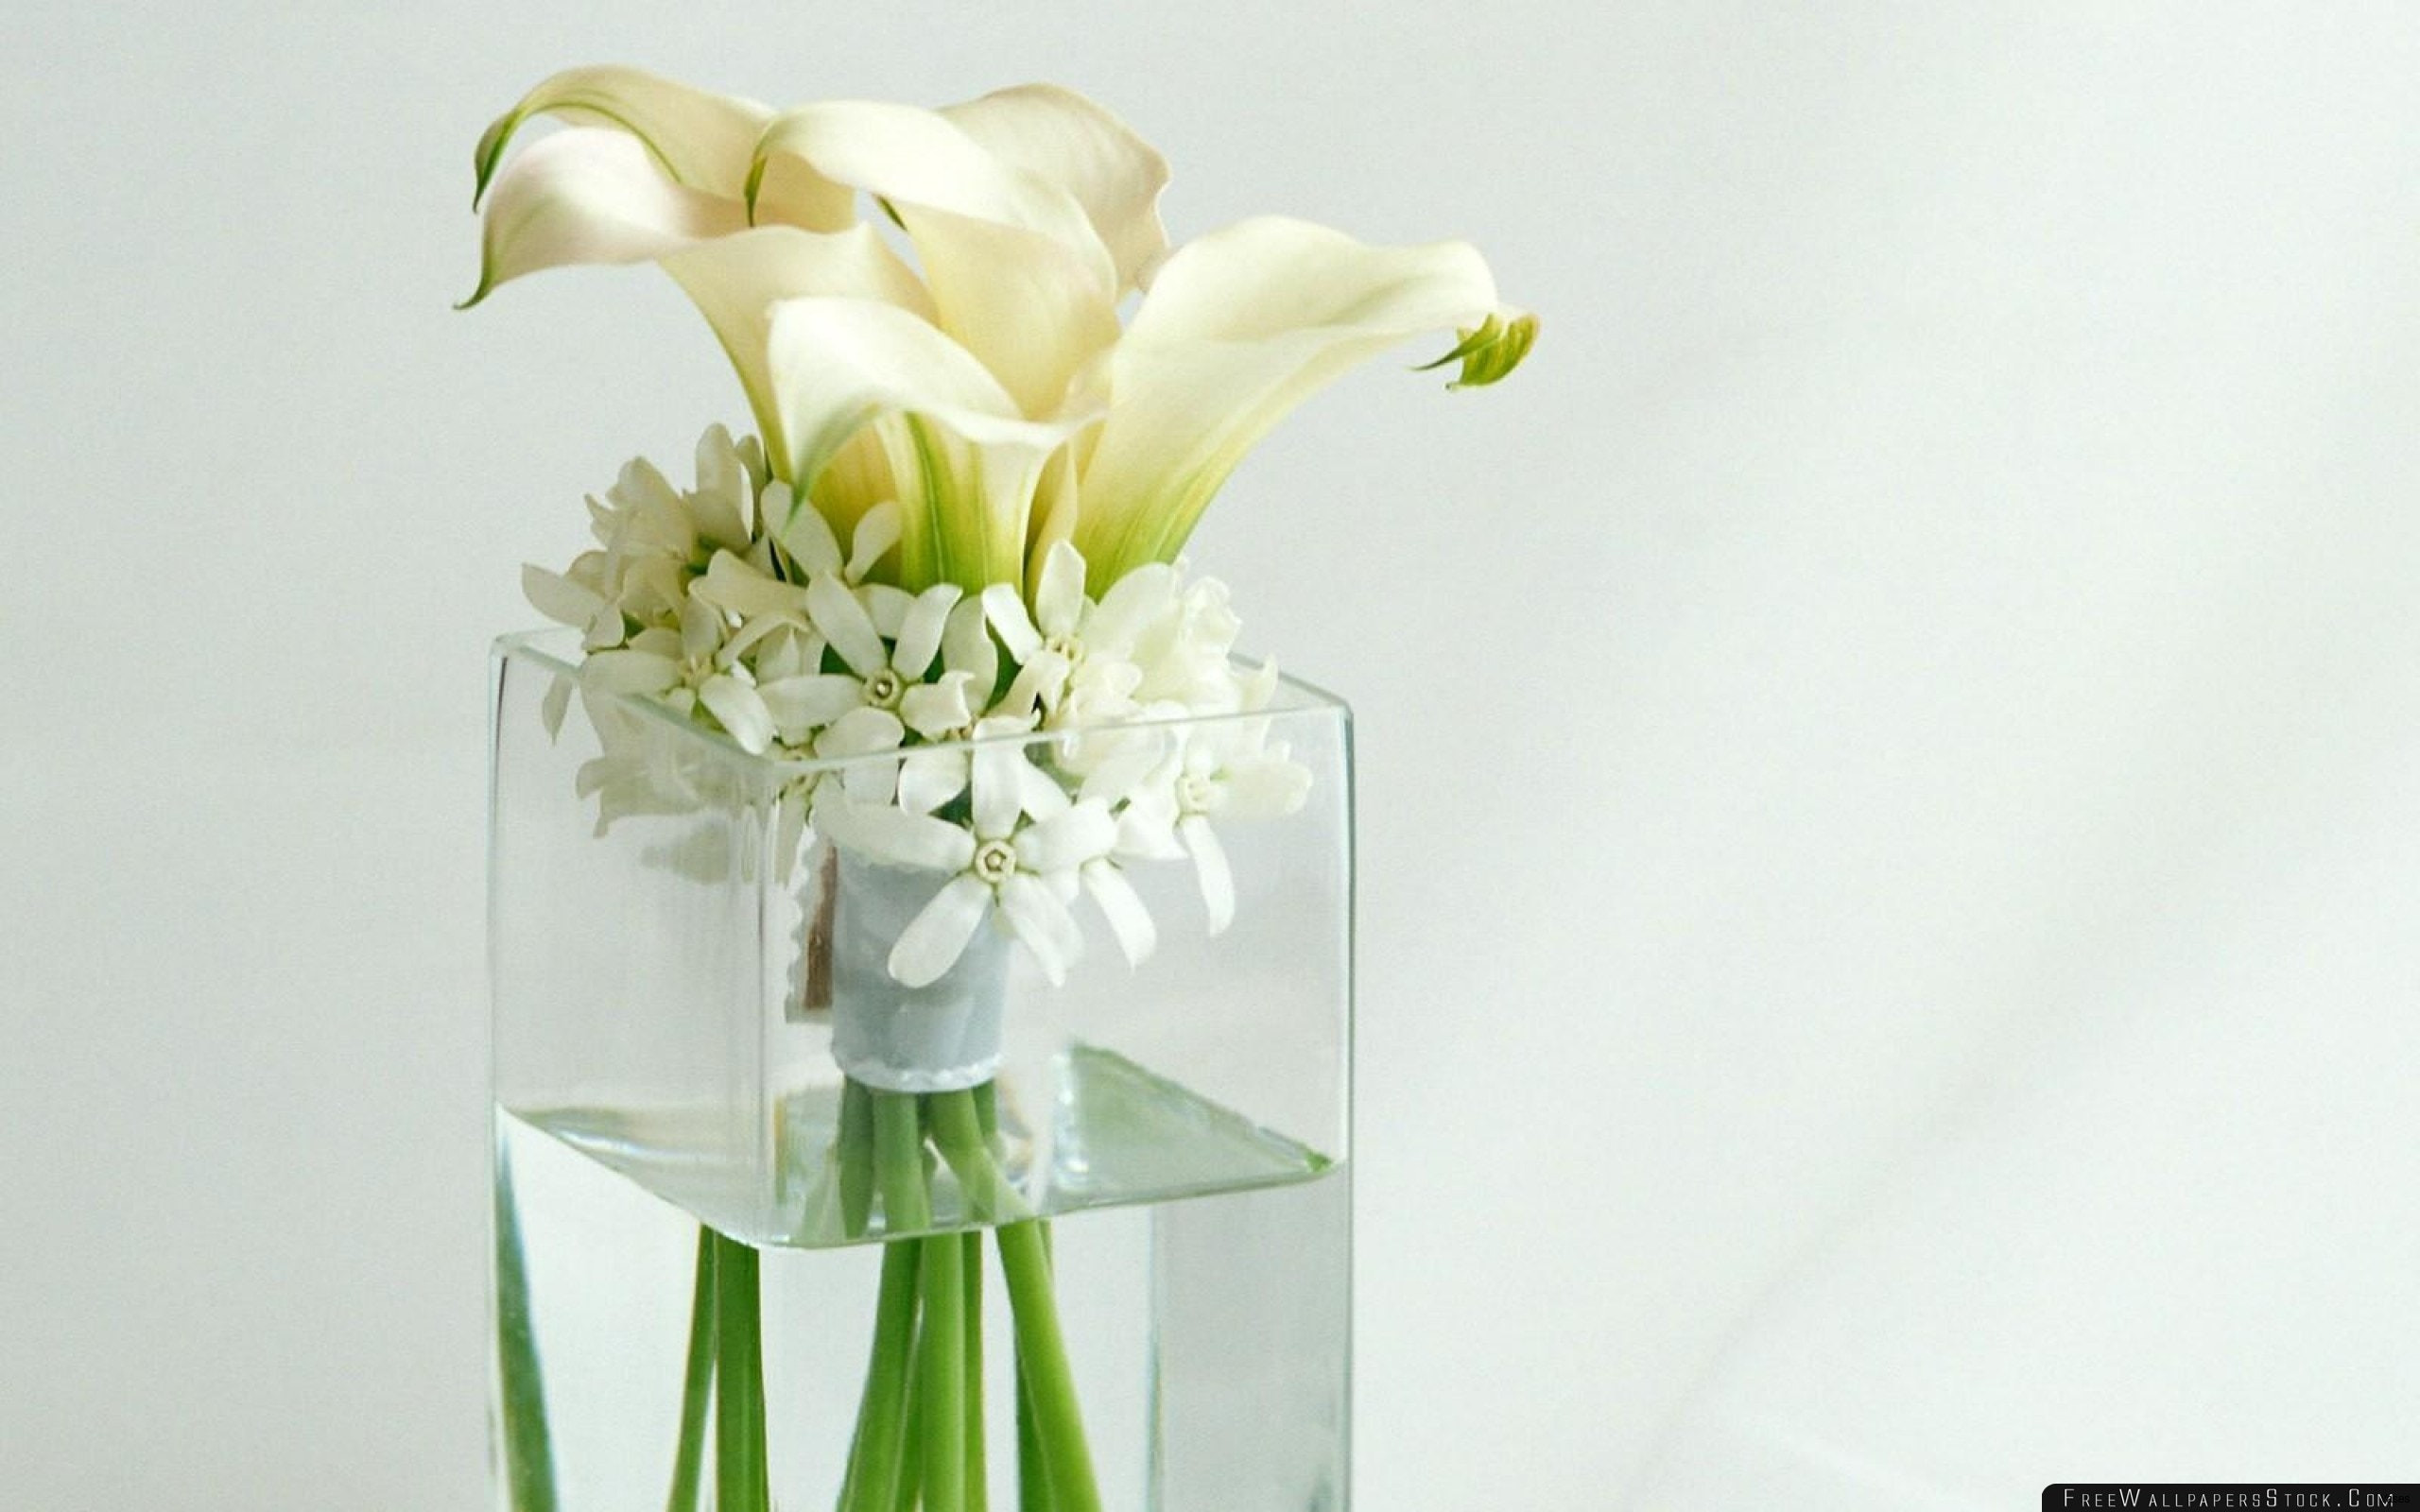 flowers in a crystal vase manet of uncategorized floral arrangement inspiration with regard to tall vase centerpiece ideas vases flowers in water 0d artificial inspiration baby shower center pieces